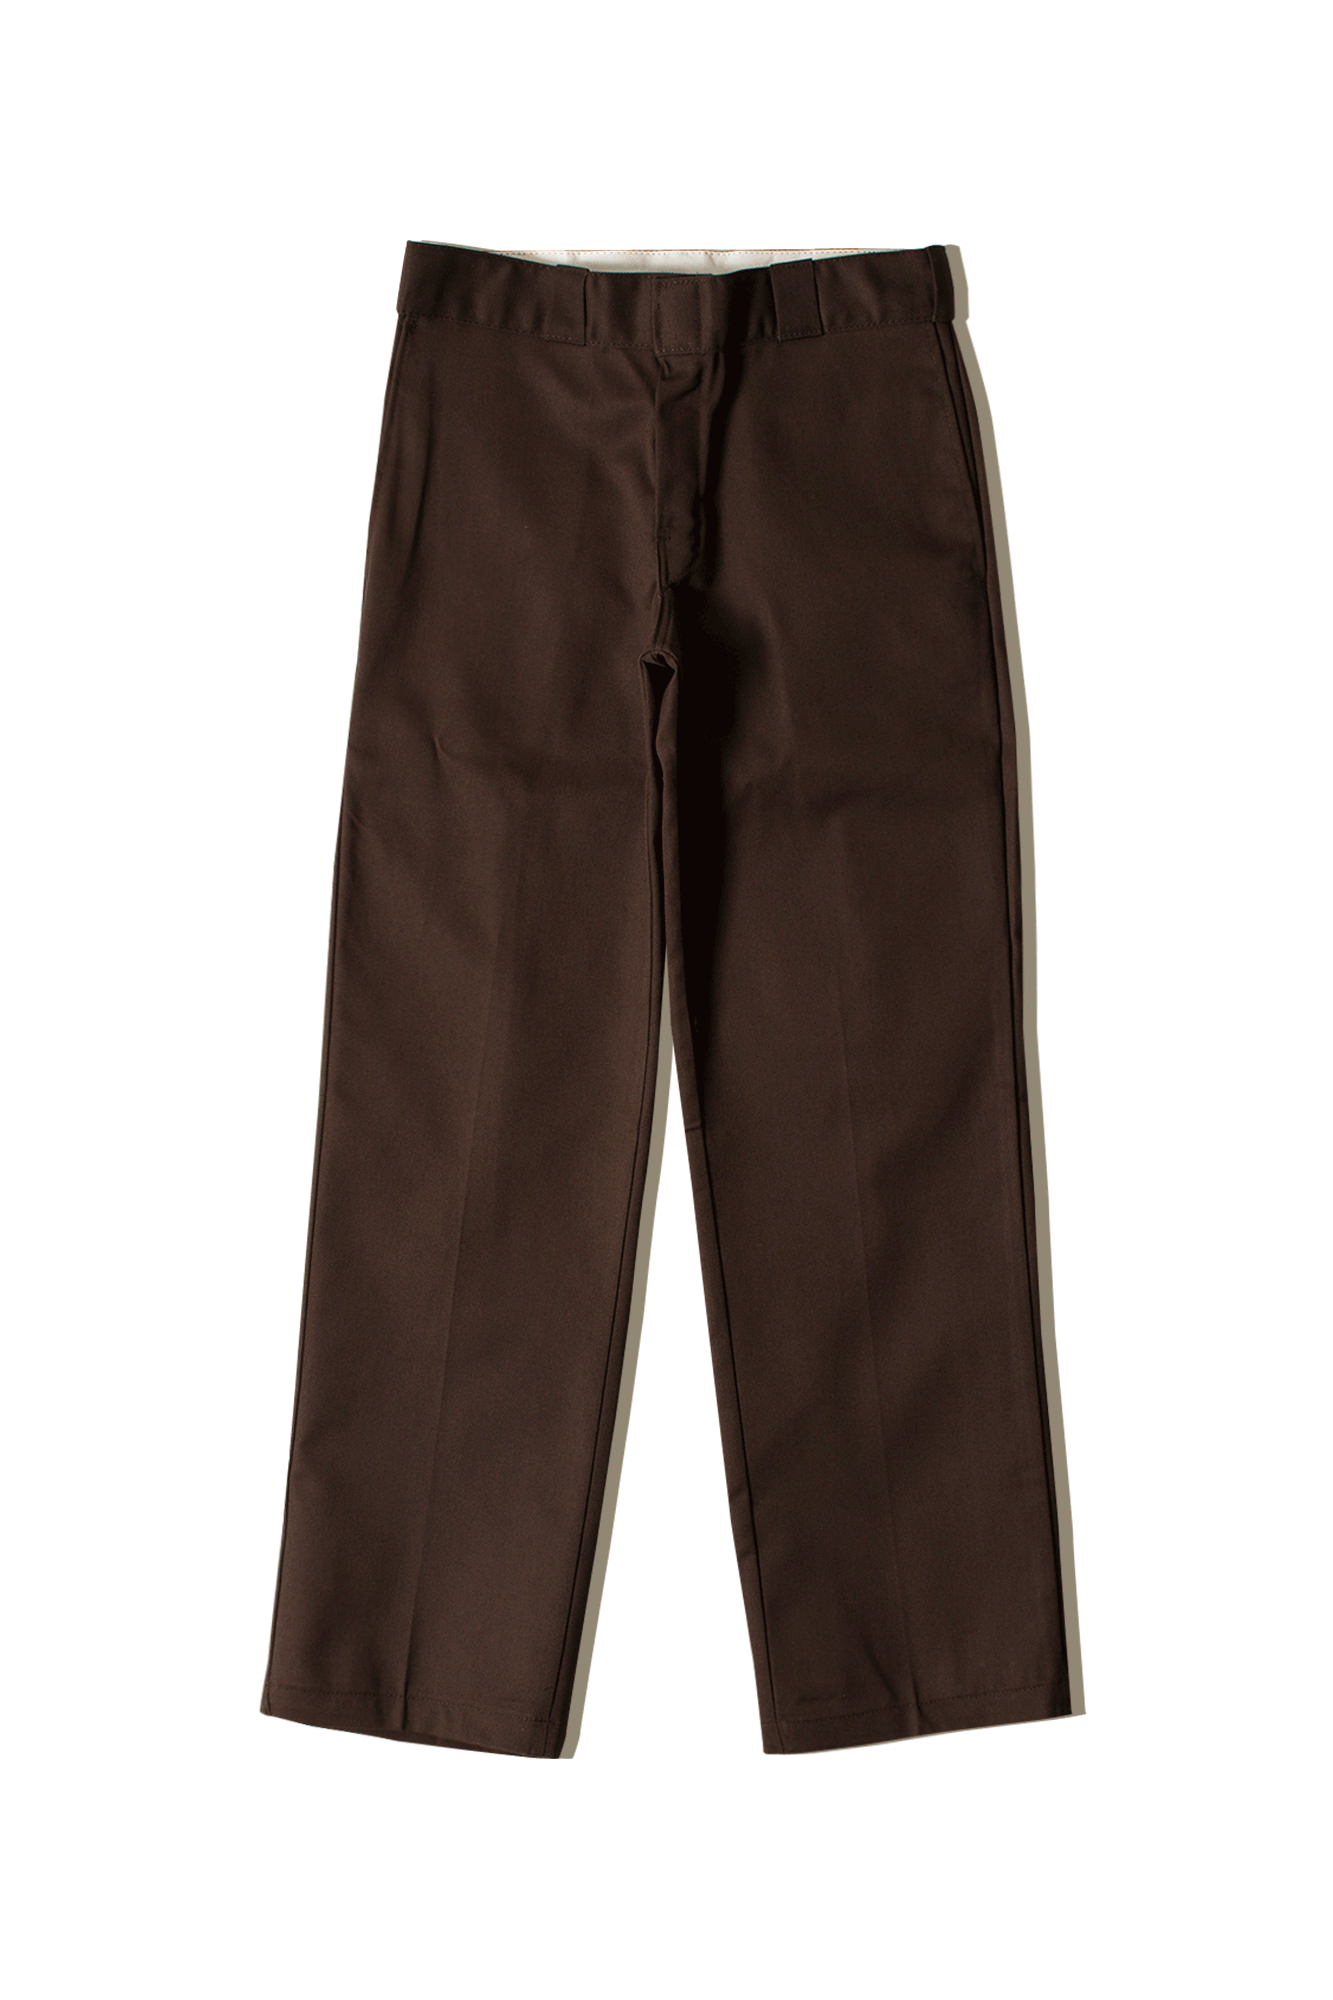 Dickies Pantaloni classici Original 874 Work Trousers Marrone 684190013#000#DBX#29/32 - One Block Down